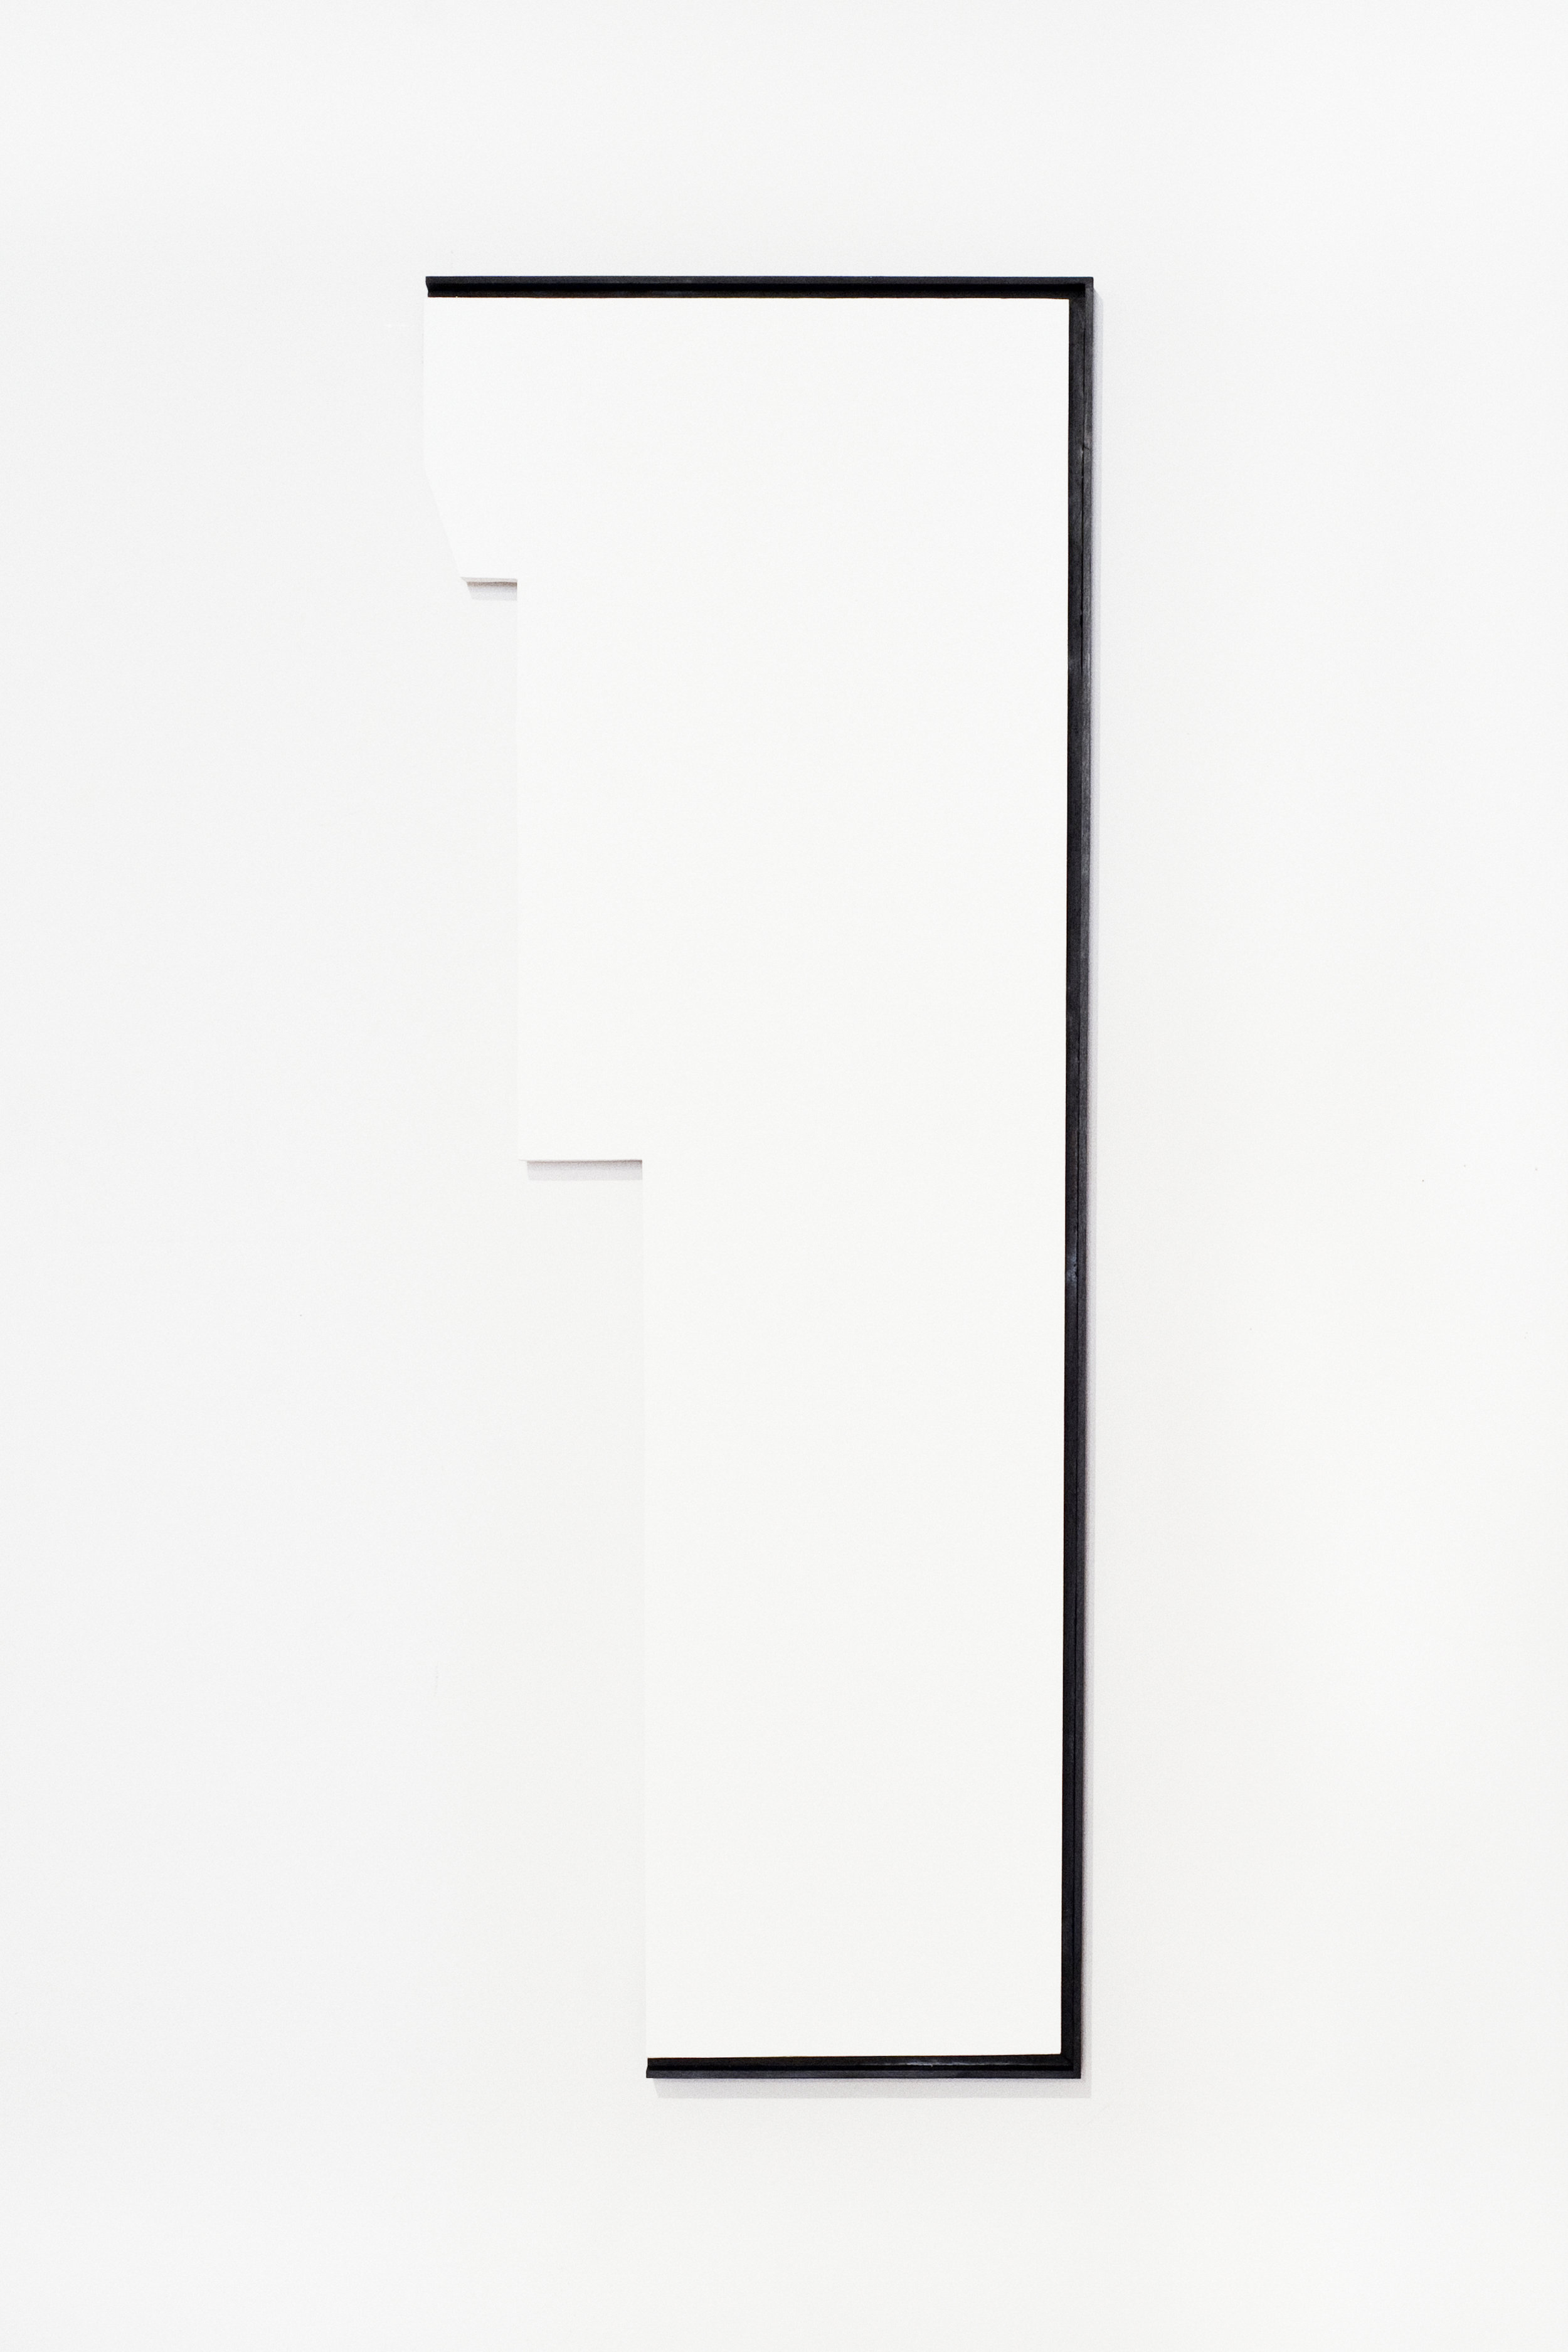 Untitled (19 E 66th St – front), 2013